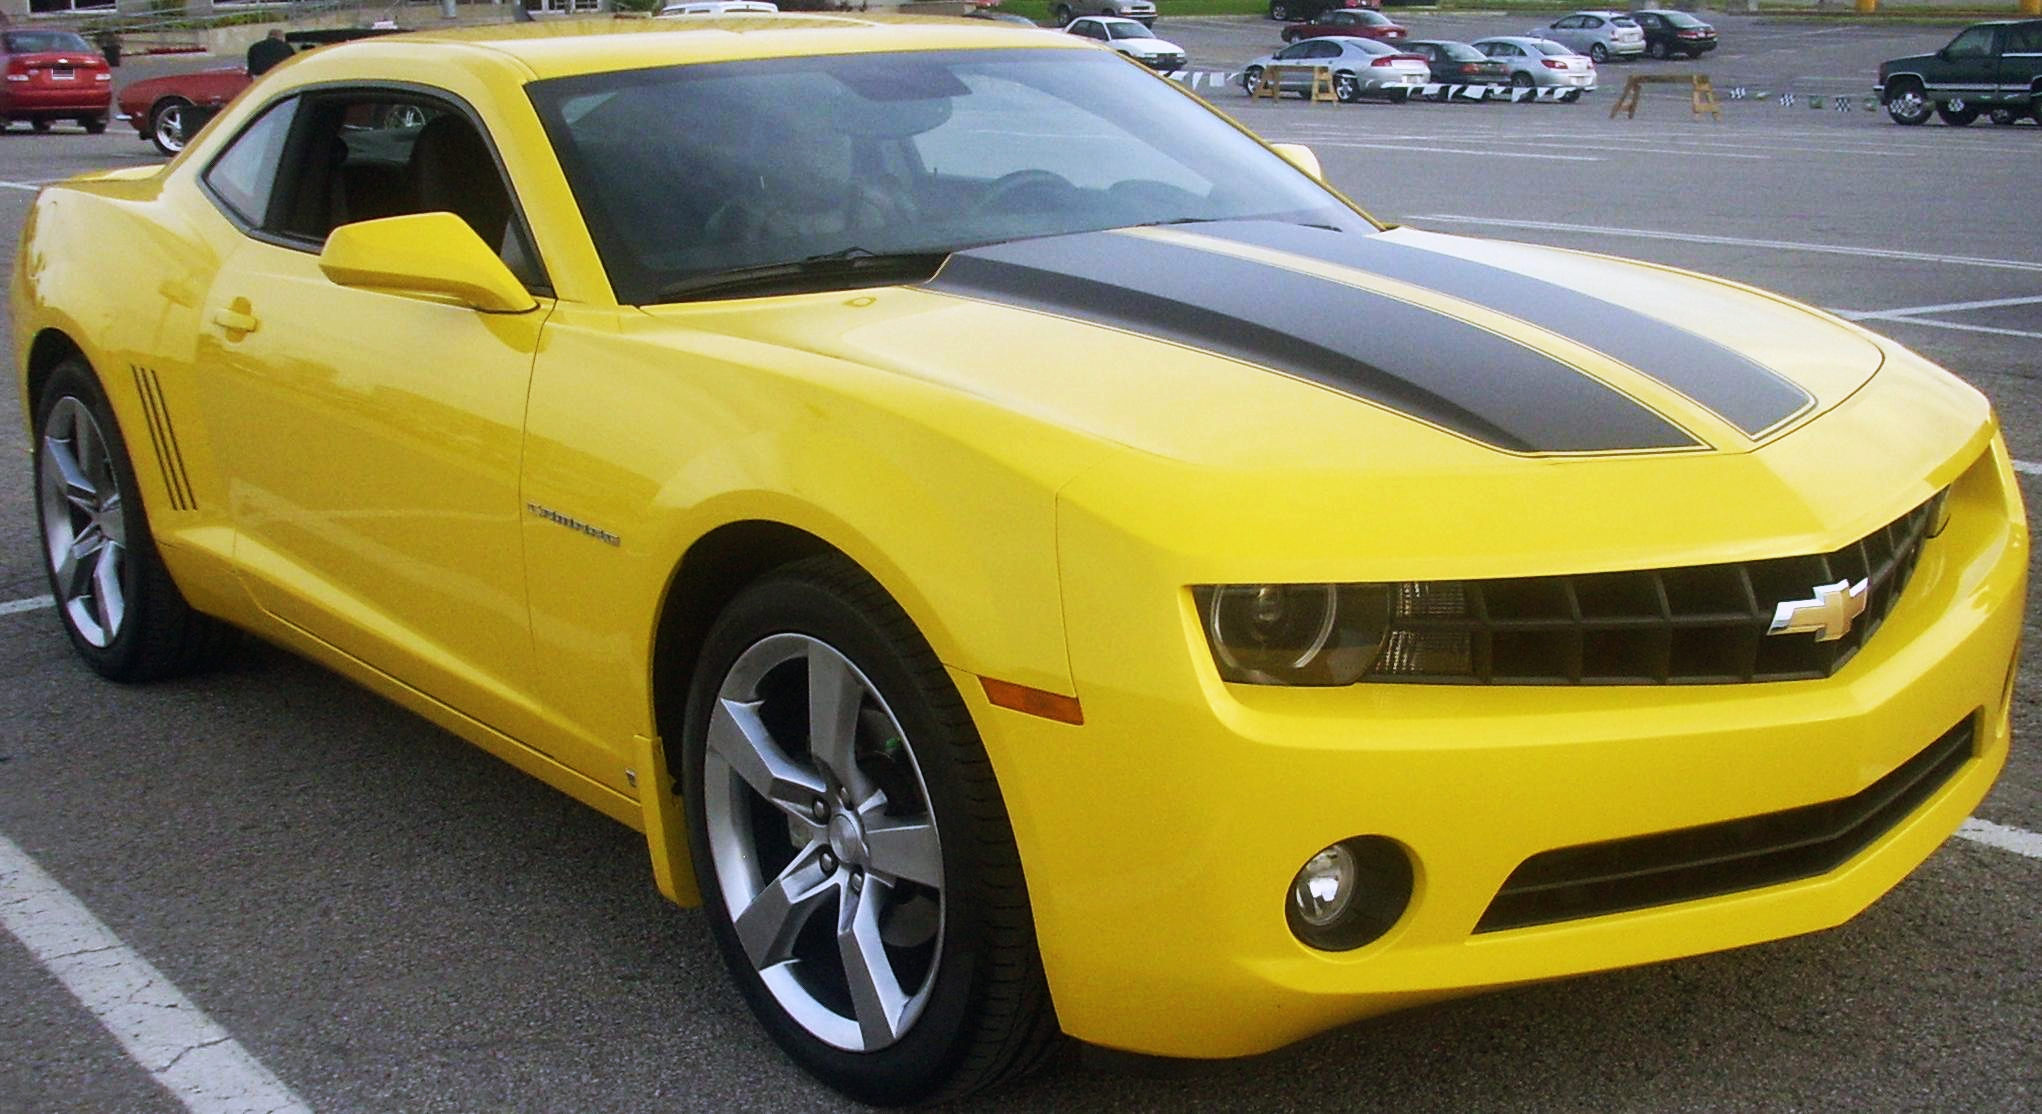 Chevrolet Camaro Wallpapers Images Photos Pictures Backgrounds